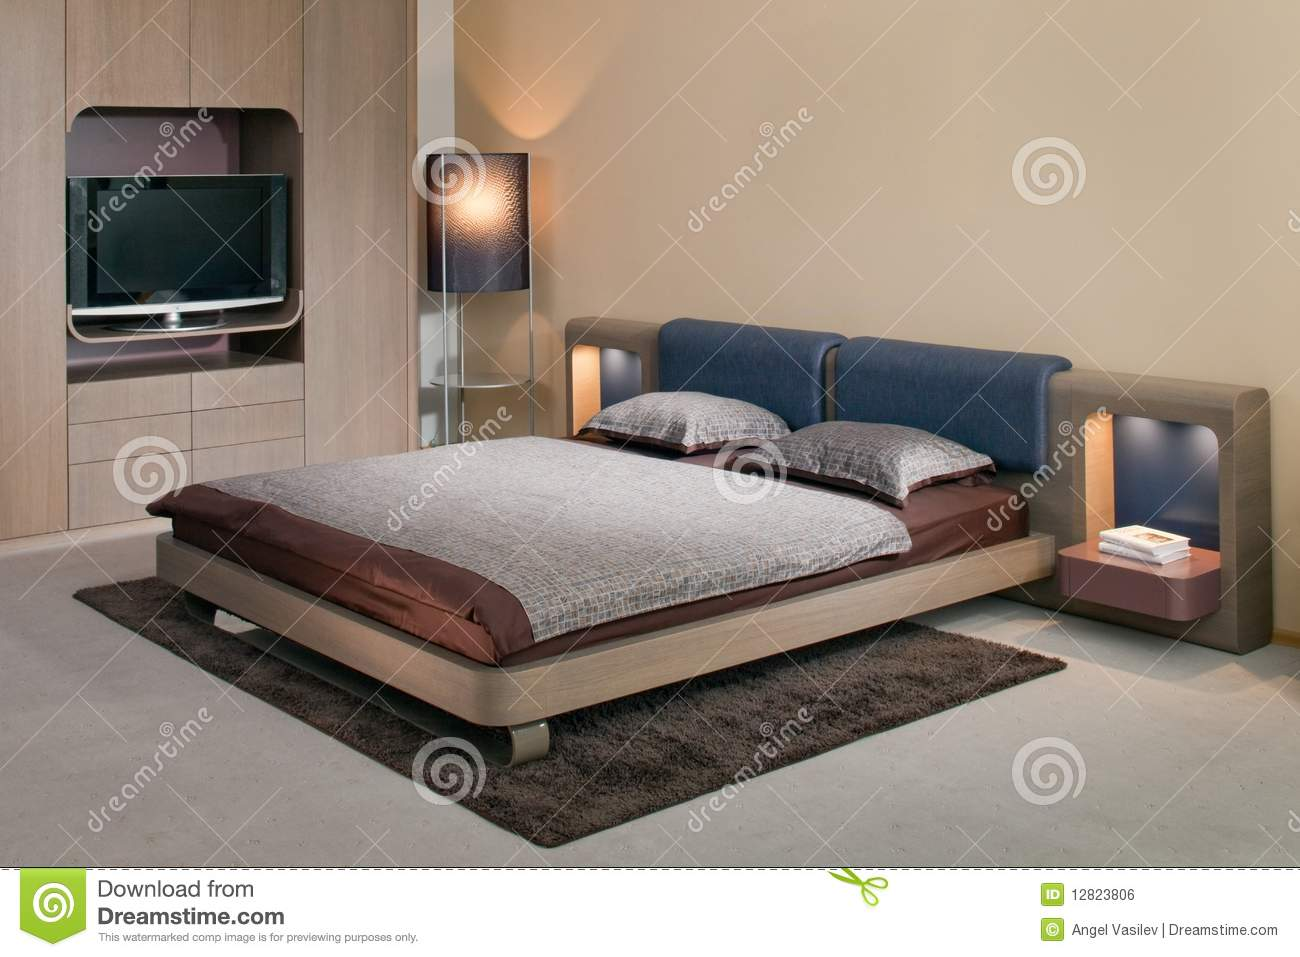 Elegant and luxury bedroom interior design royalty free for Bedroom photos